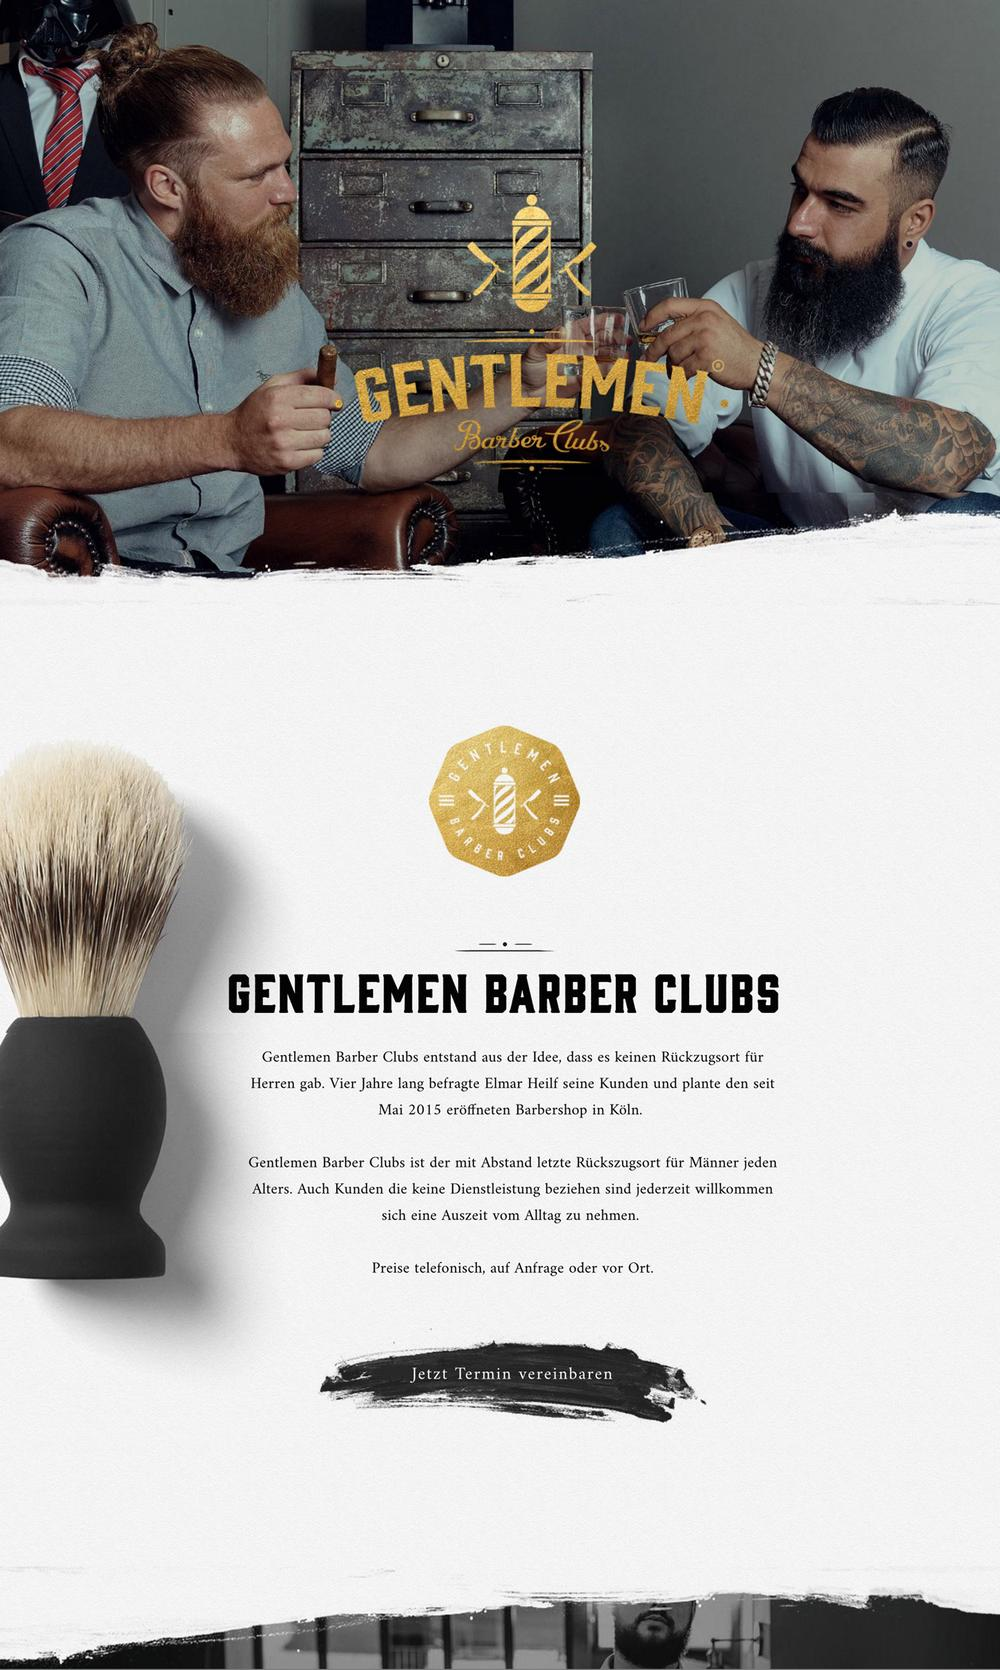 Gentlement - Manly color schemes for websites - gold and black